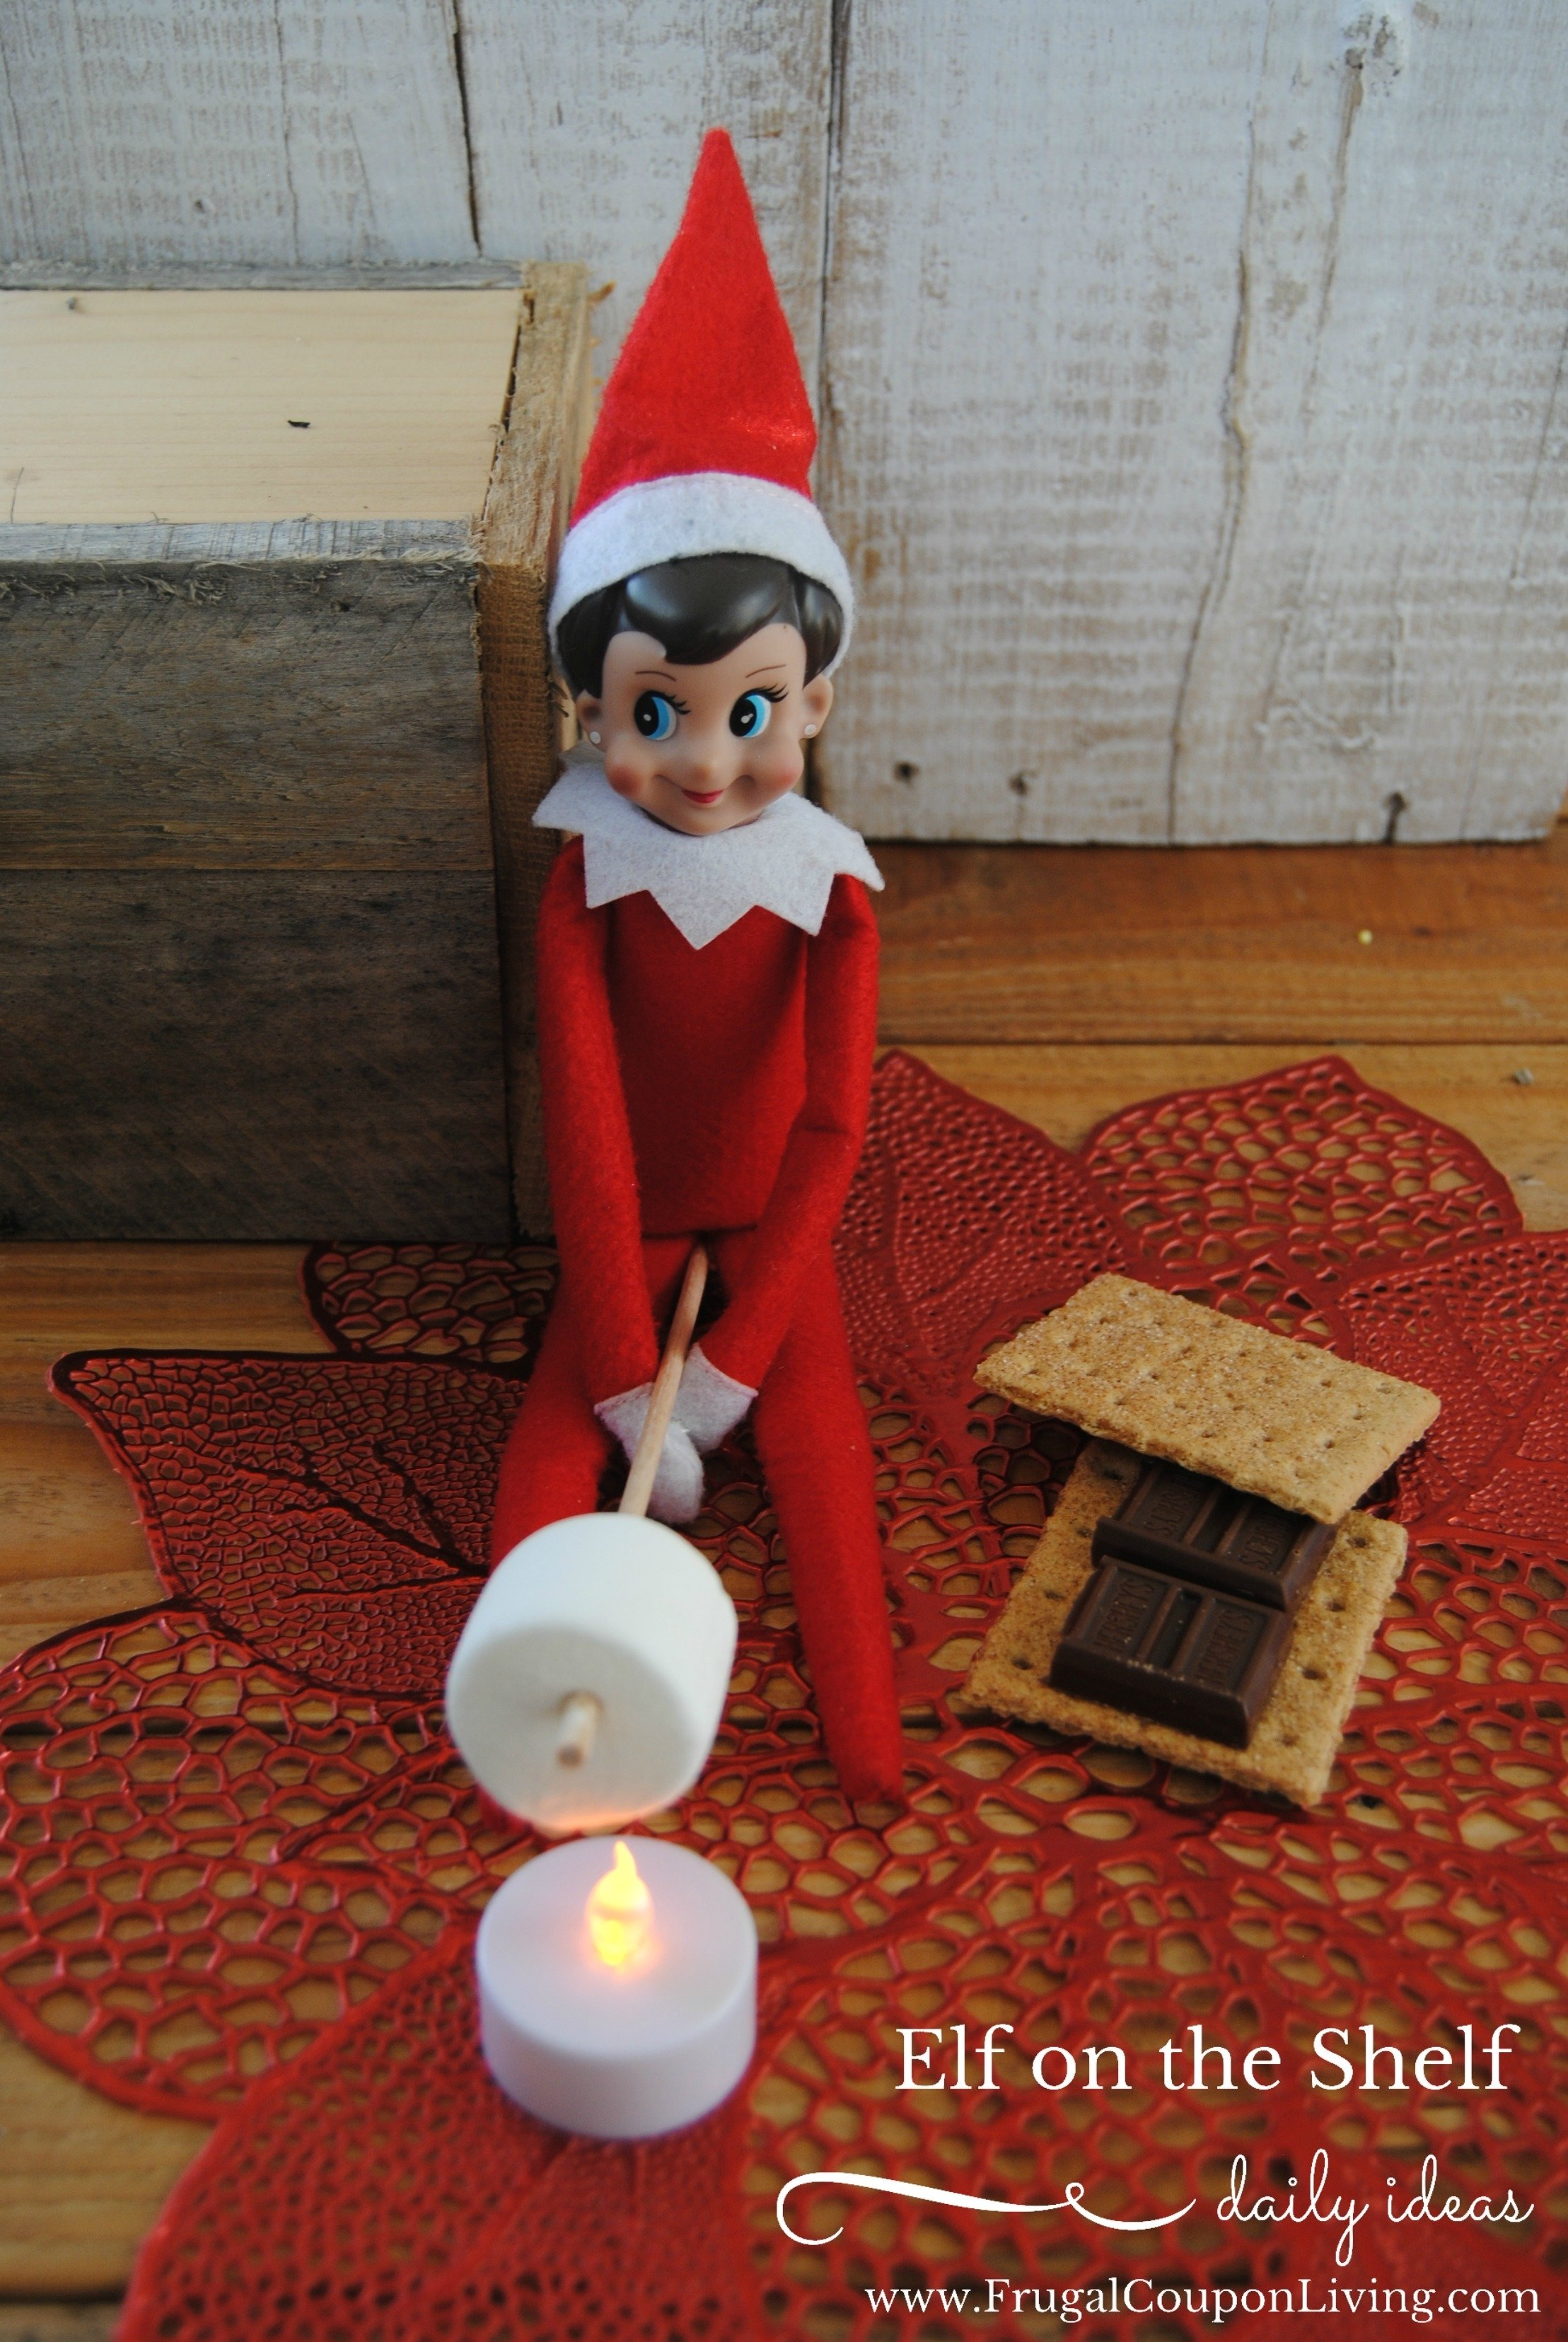 10 Pretty Ideas For Elf On A Shelf elf on the shelf ideas elf makes smores 5 2021